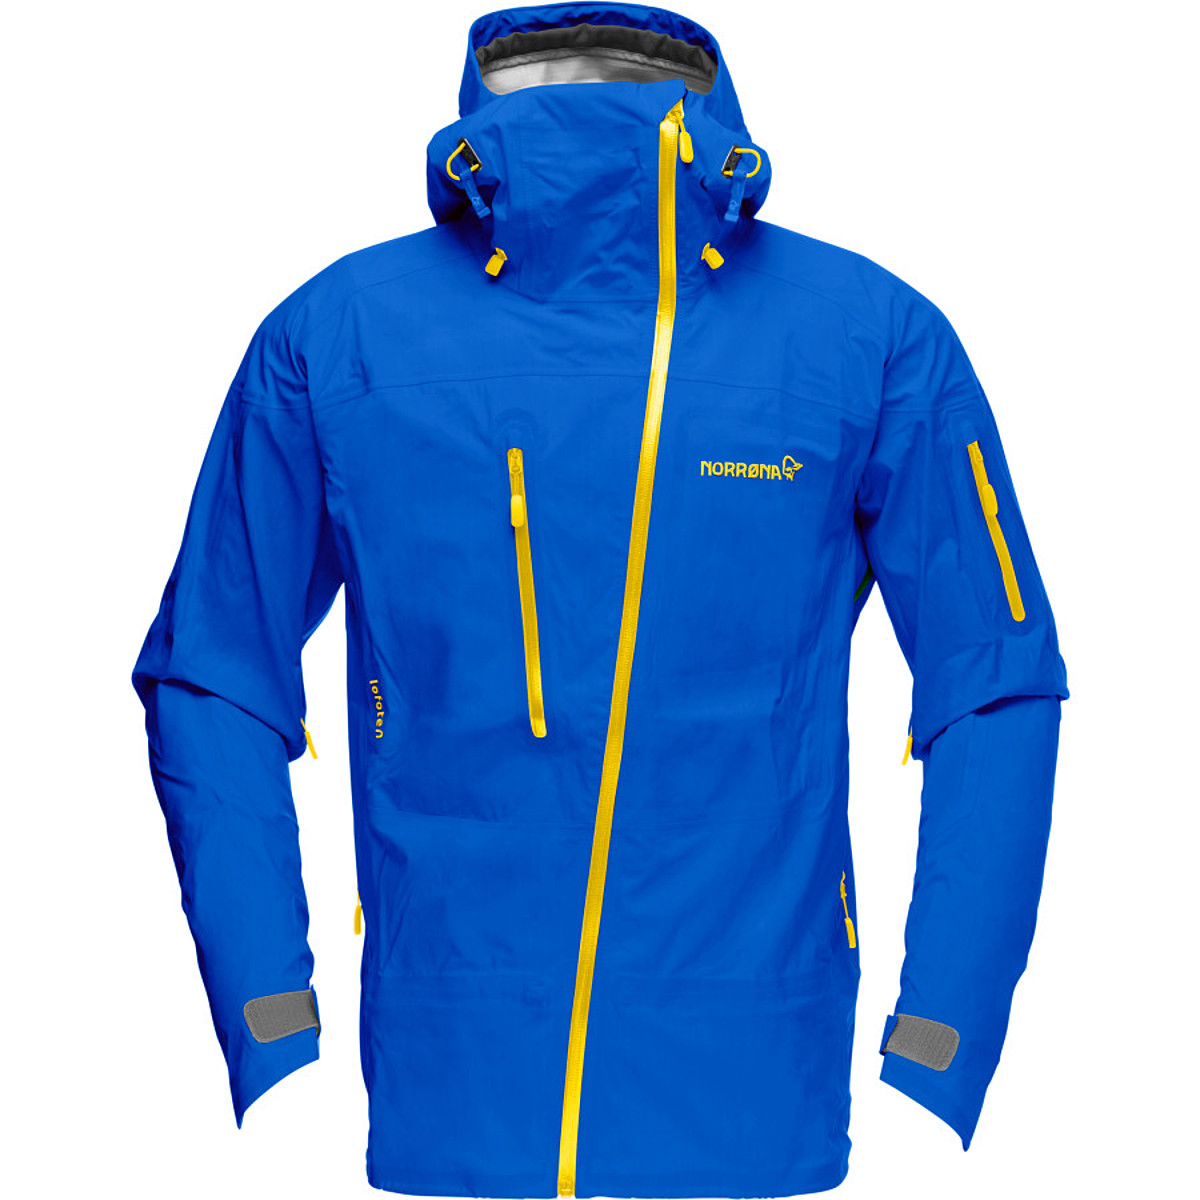 photo: Norrona Men's Lofoten Gore-Tex Active Shell Jacket waterproof jacket